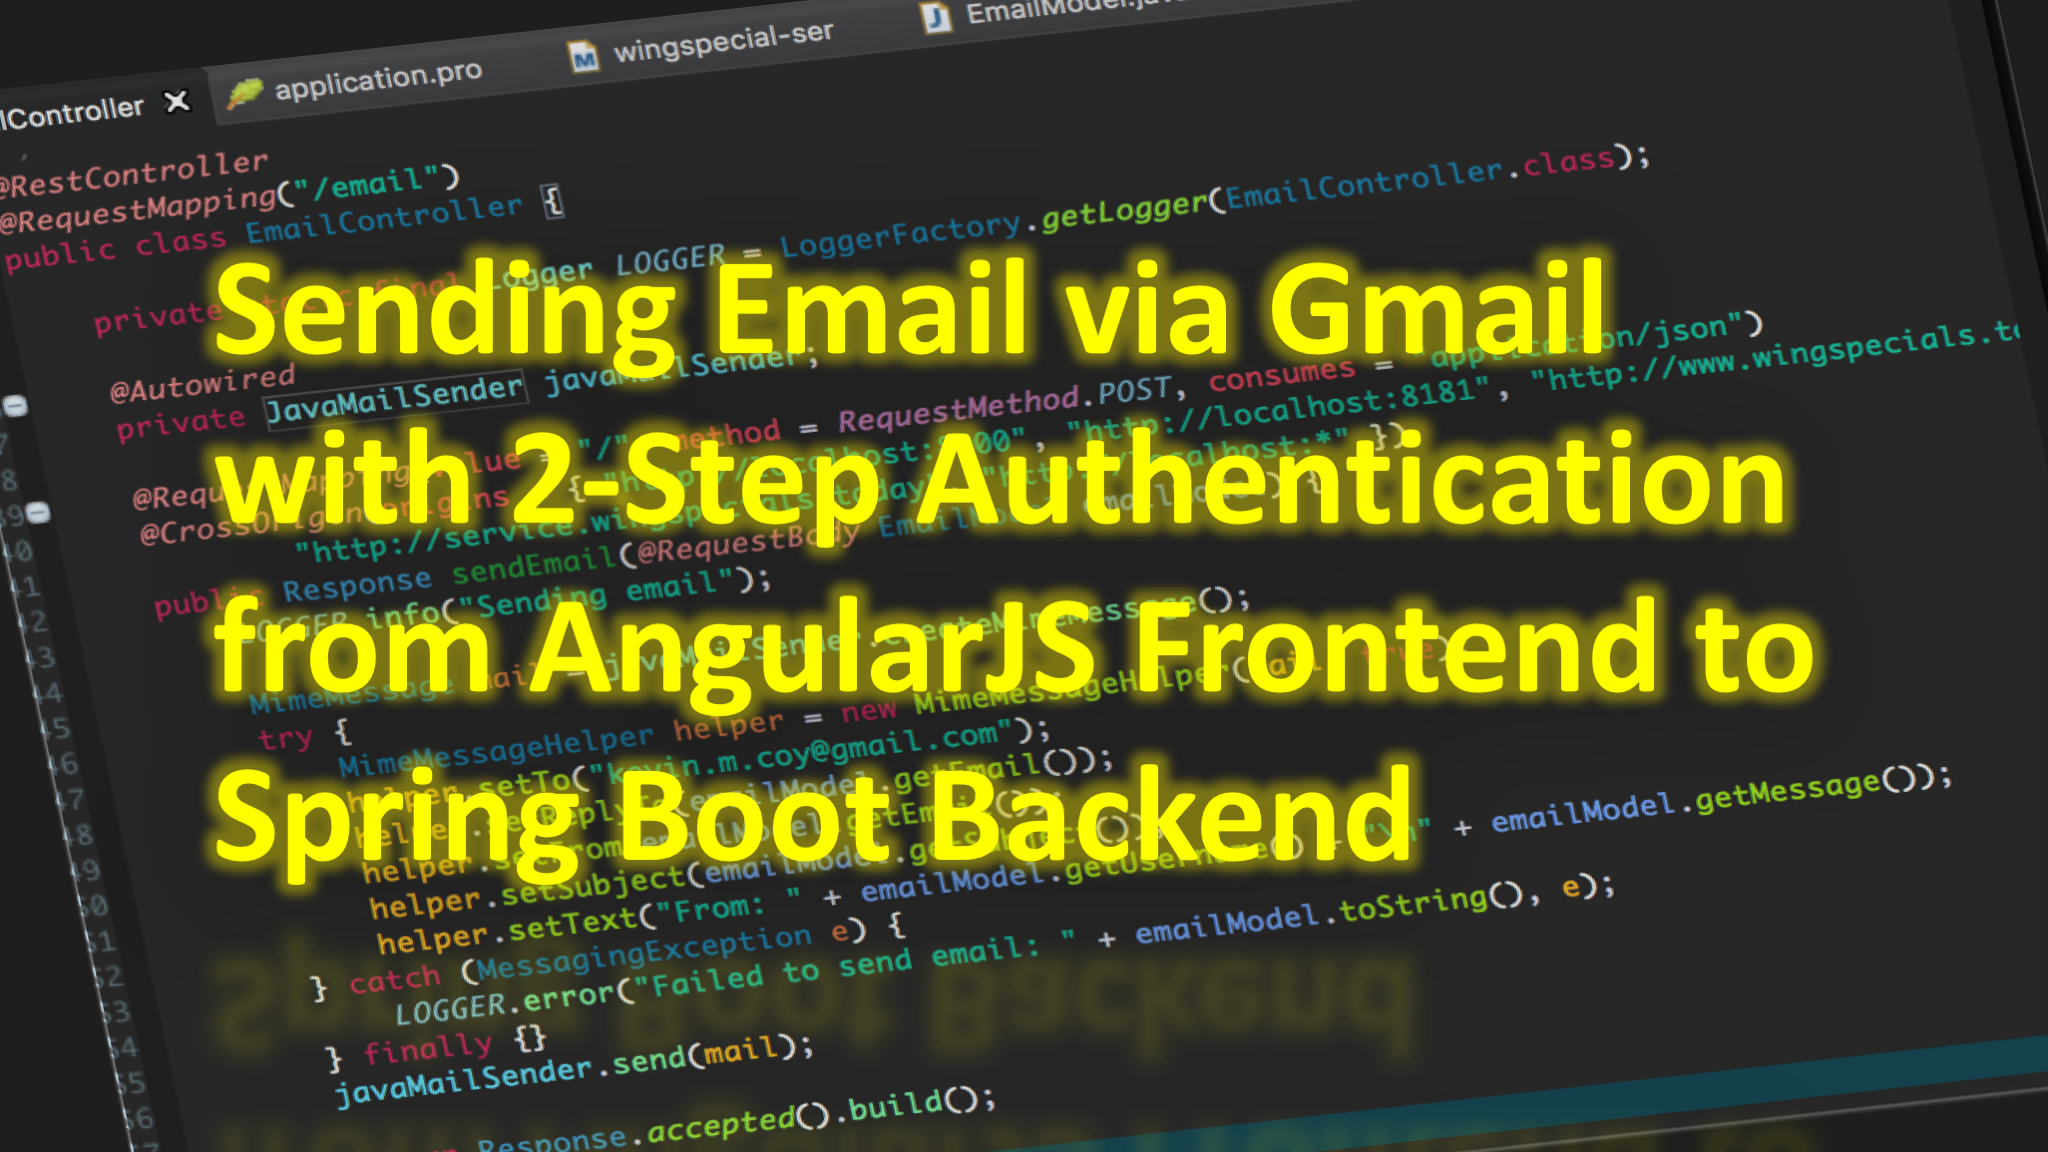 Sending Email via Gmail with 2-Step Authentication from AngularJS Frontend to Spring Boot Backend